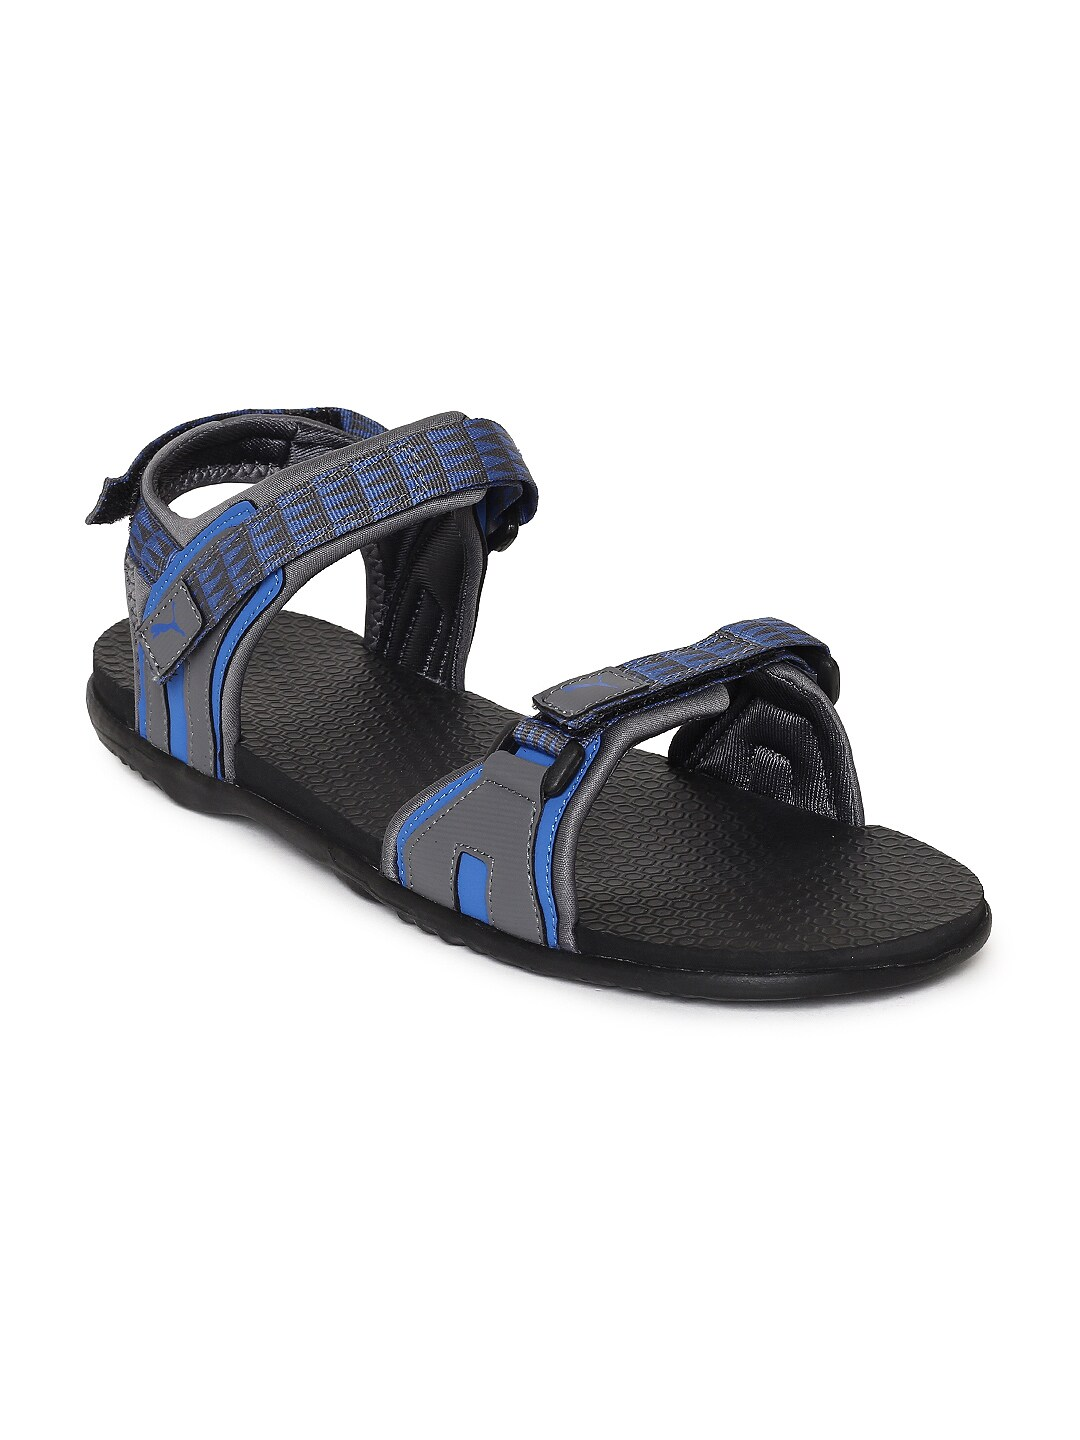 3c17b294a399 Puma And Adidas Sports Sandals - Buy Puma And Adidas Sports Sandals online  in India